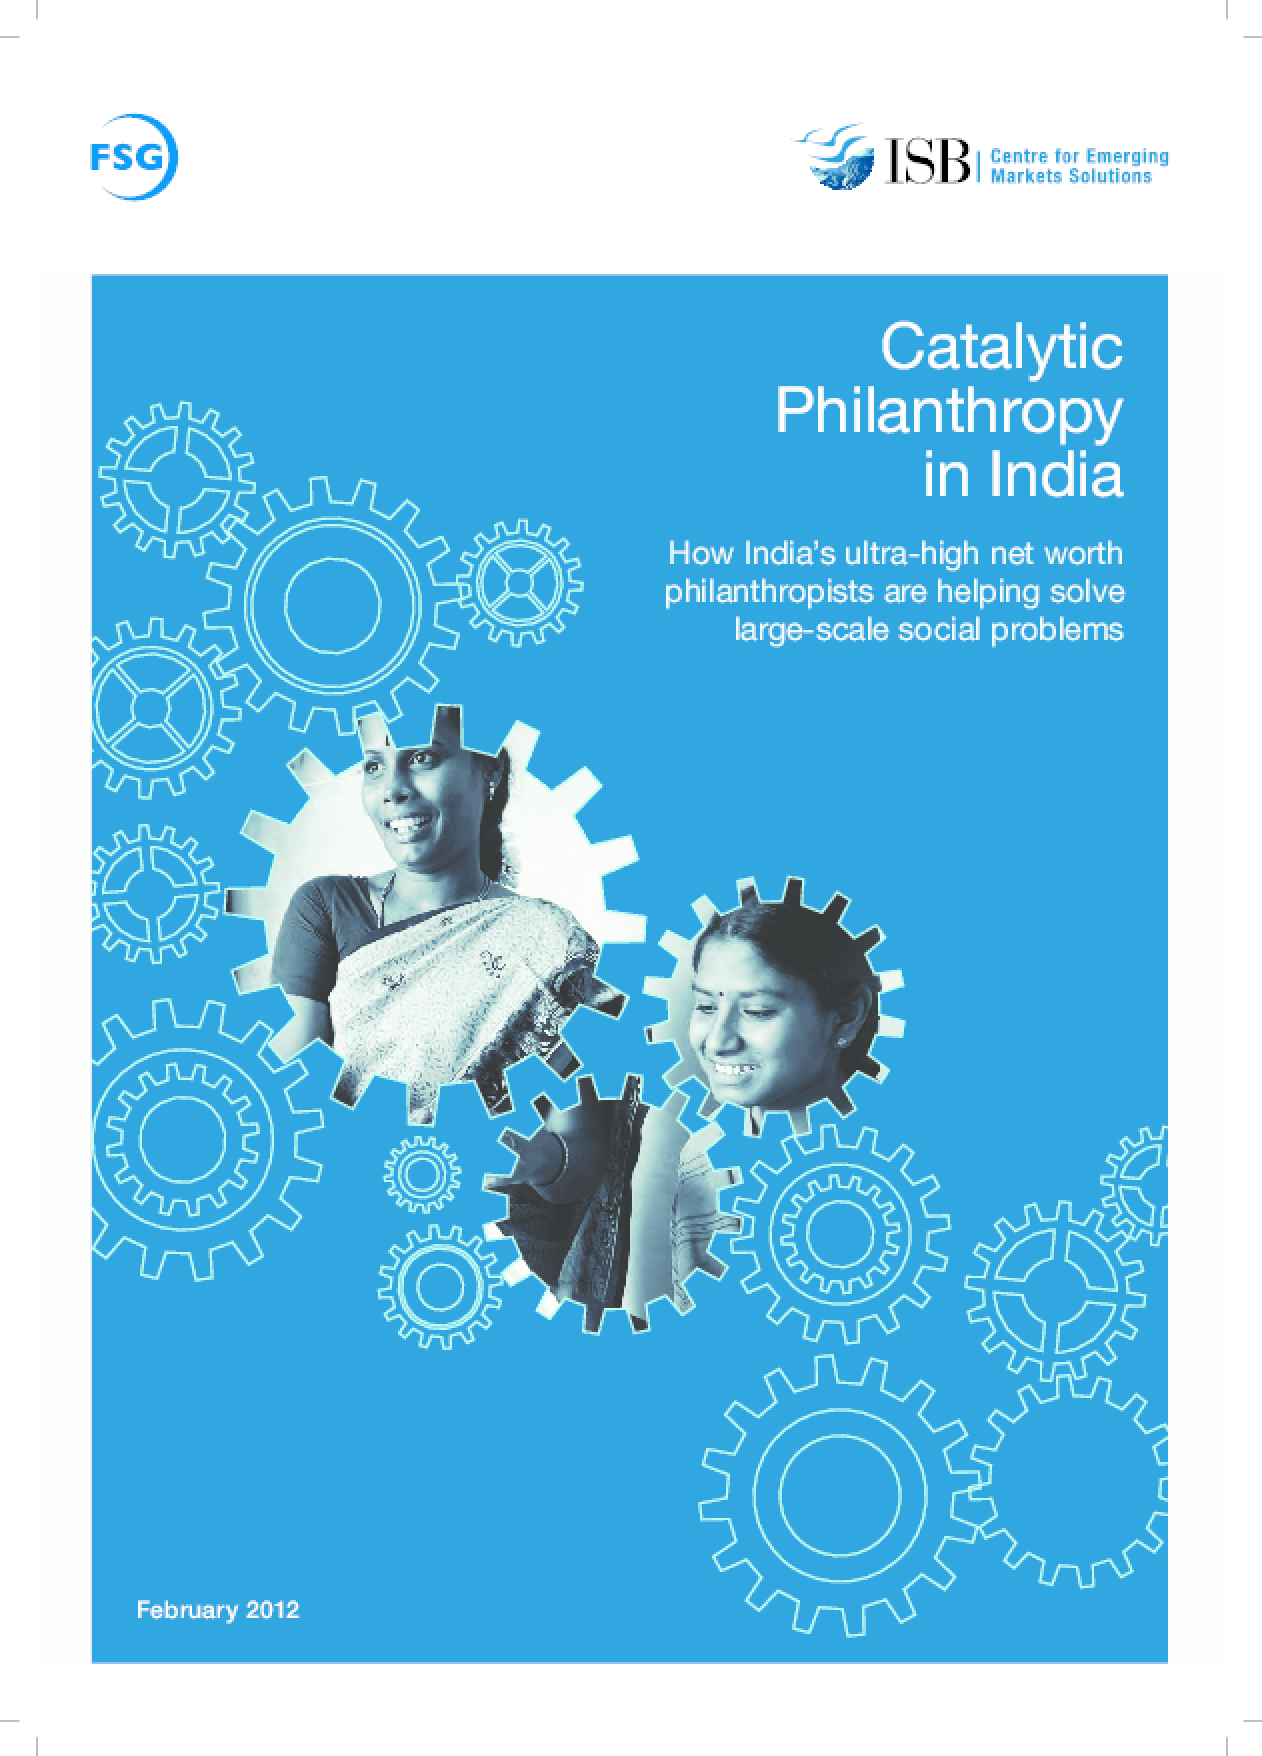 Catalytic Philanthropy In India